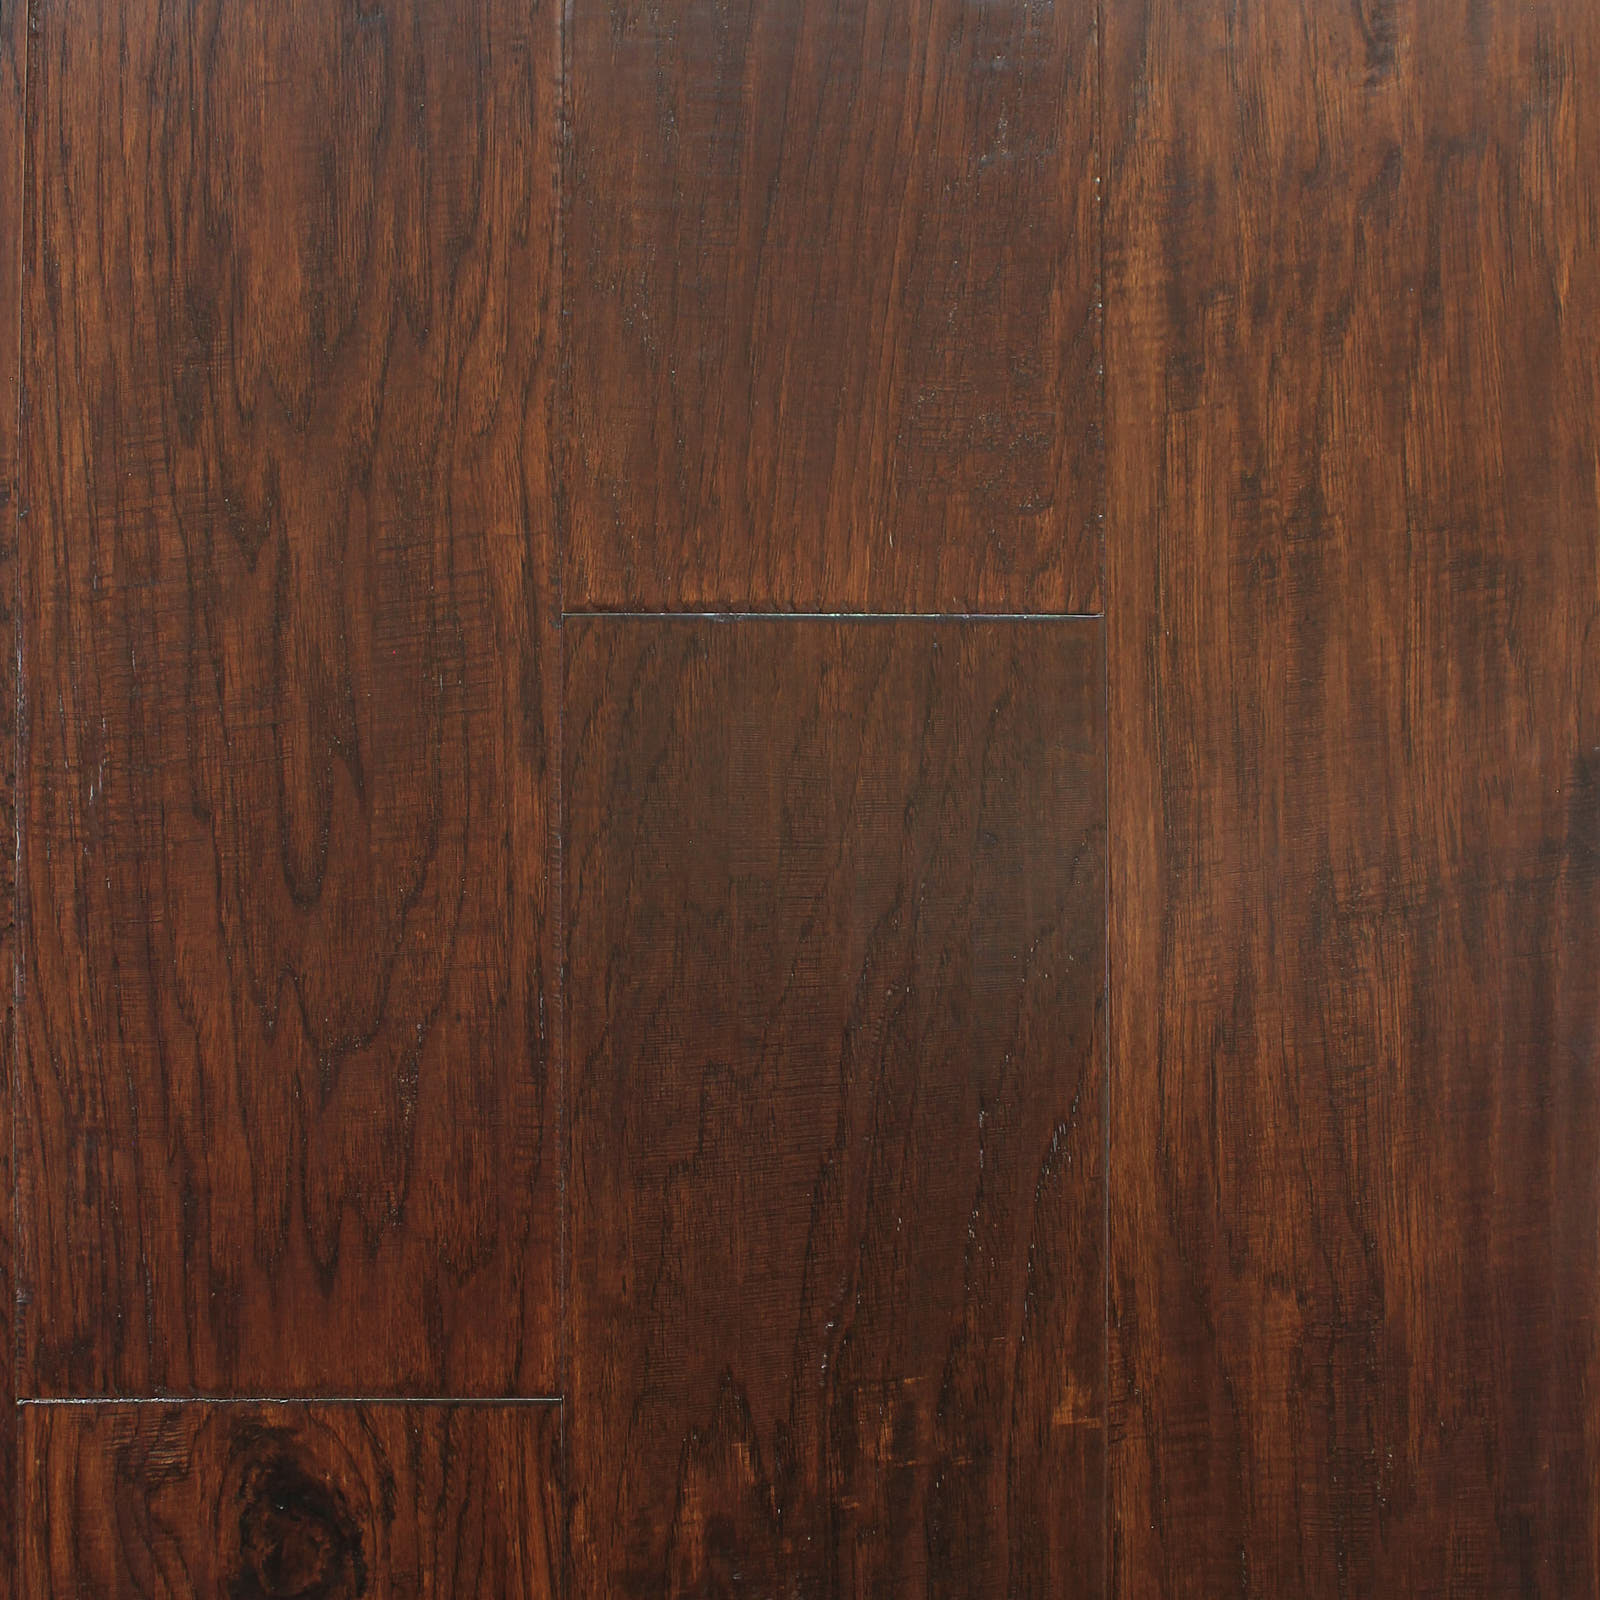 Envy Mouna Engineered Hardwood Flooring